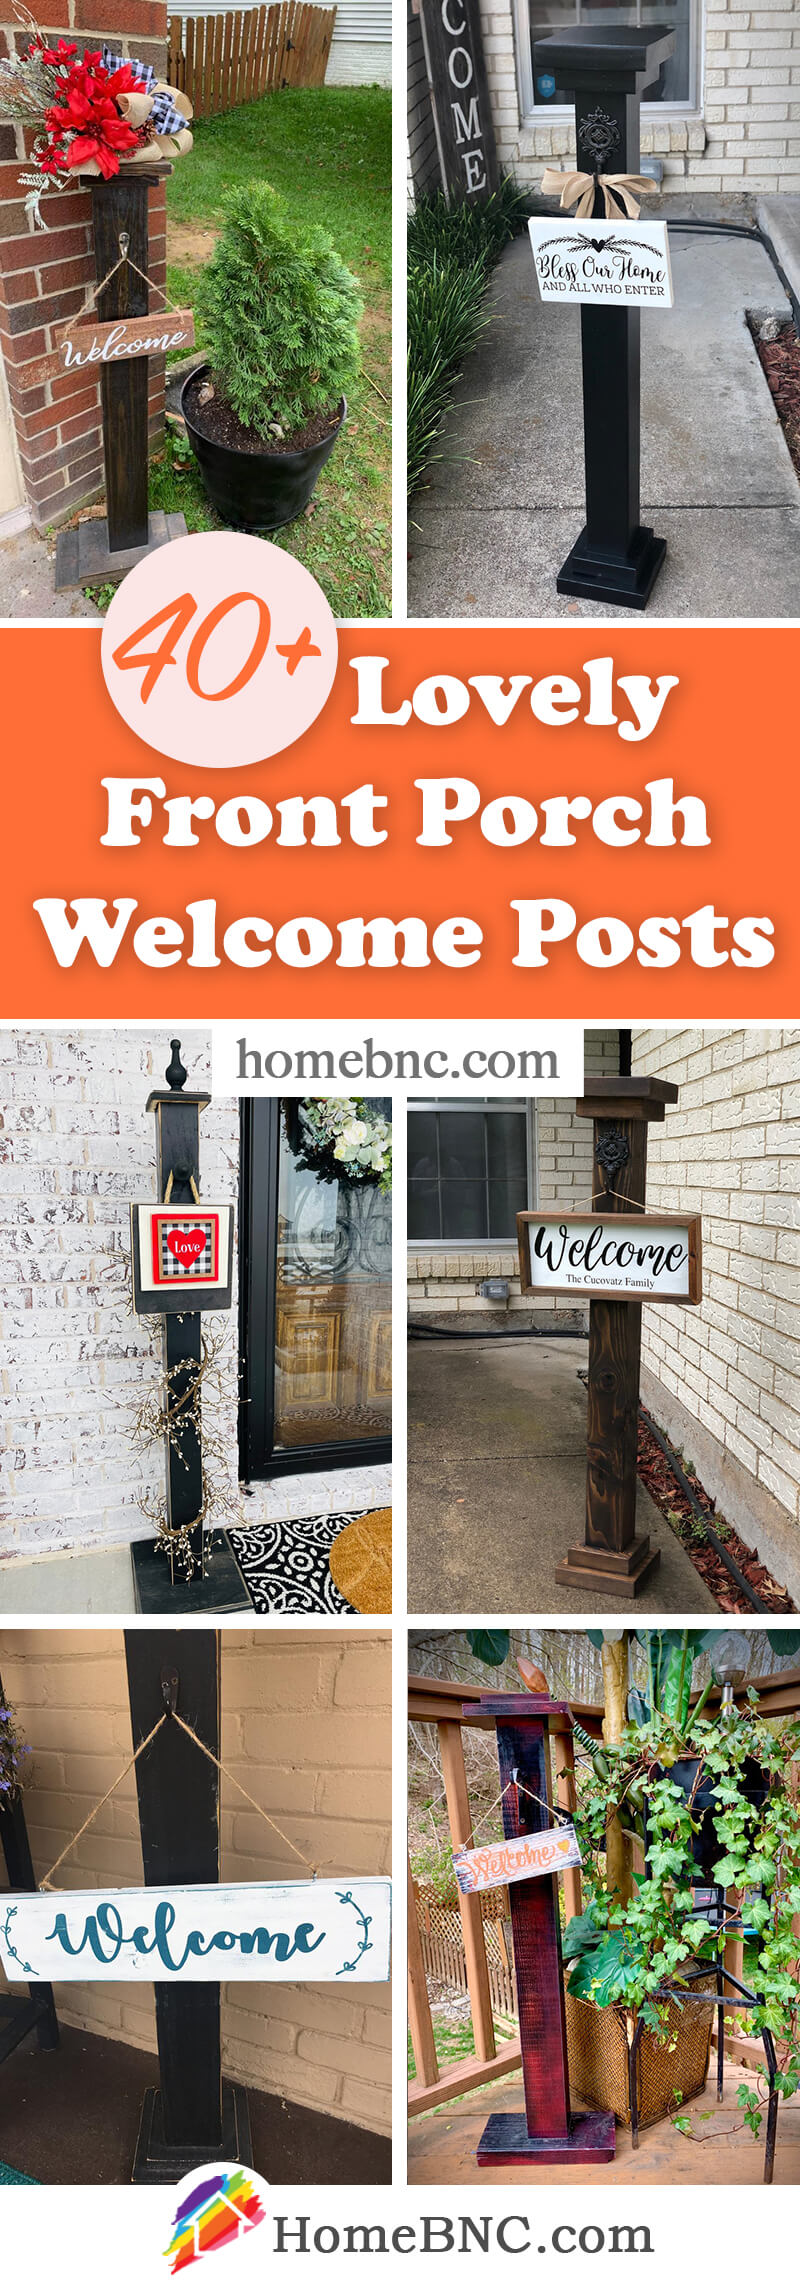 Front Porch Welcome Posts